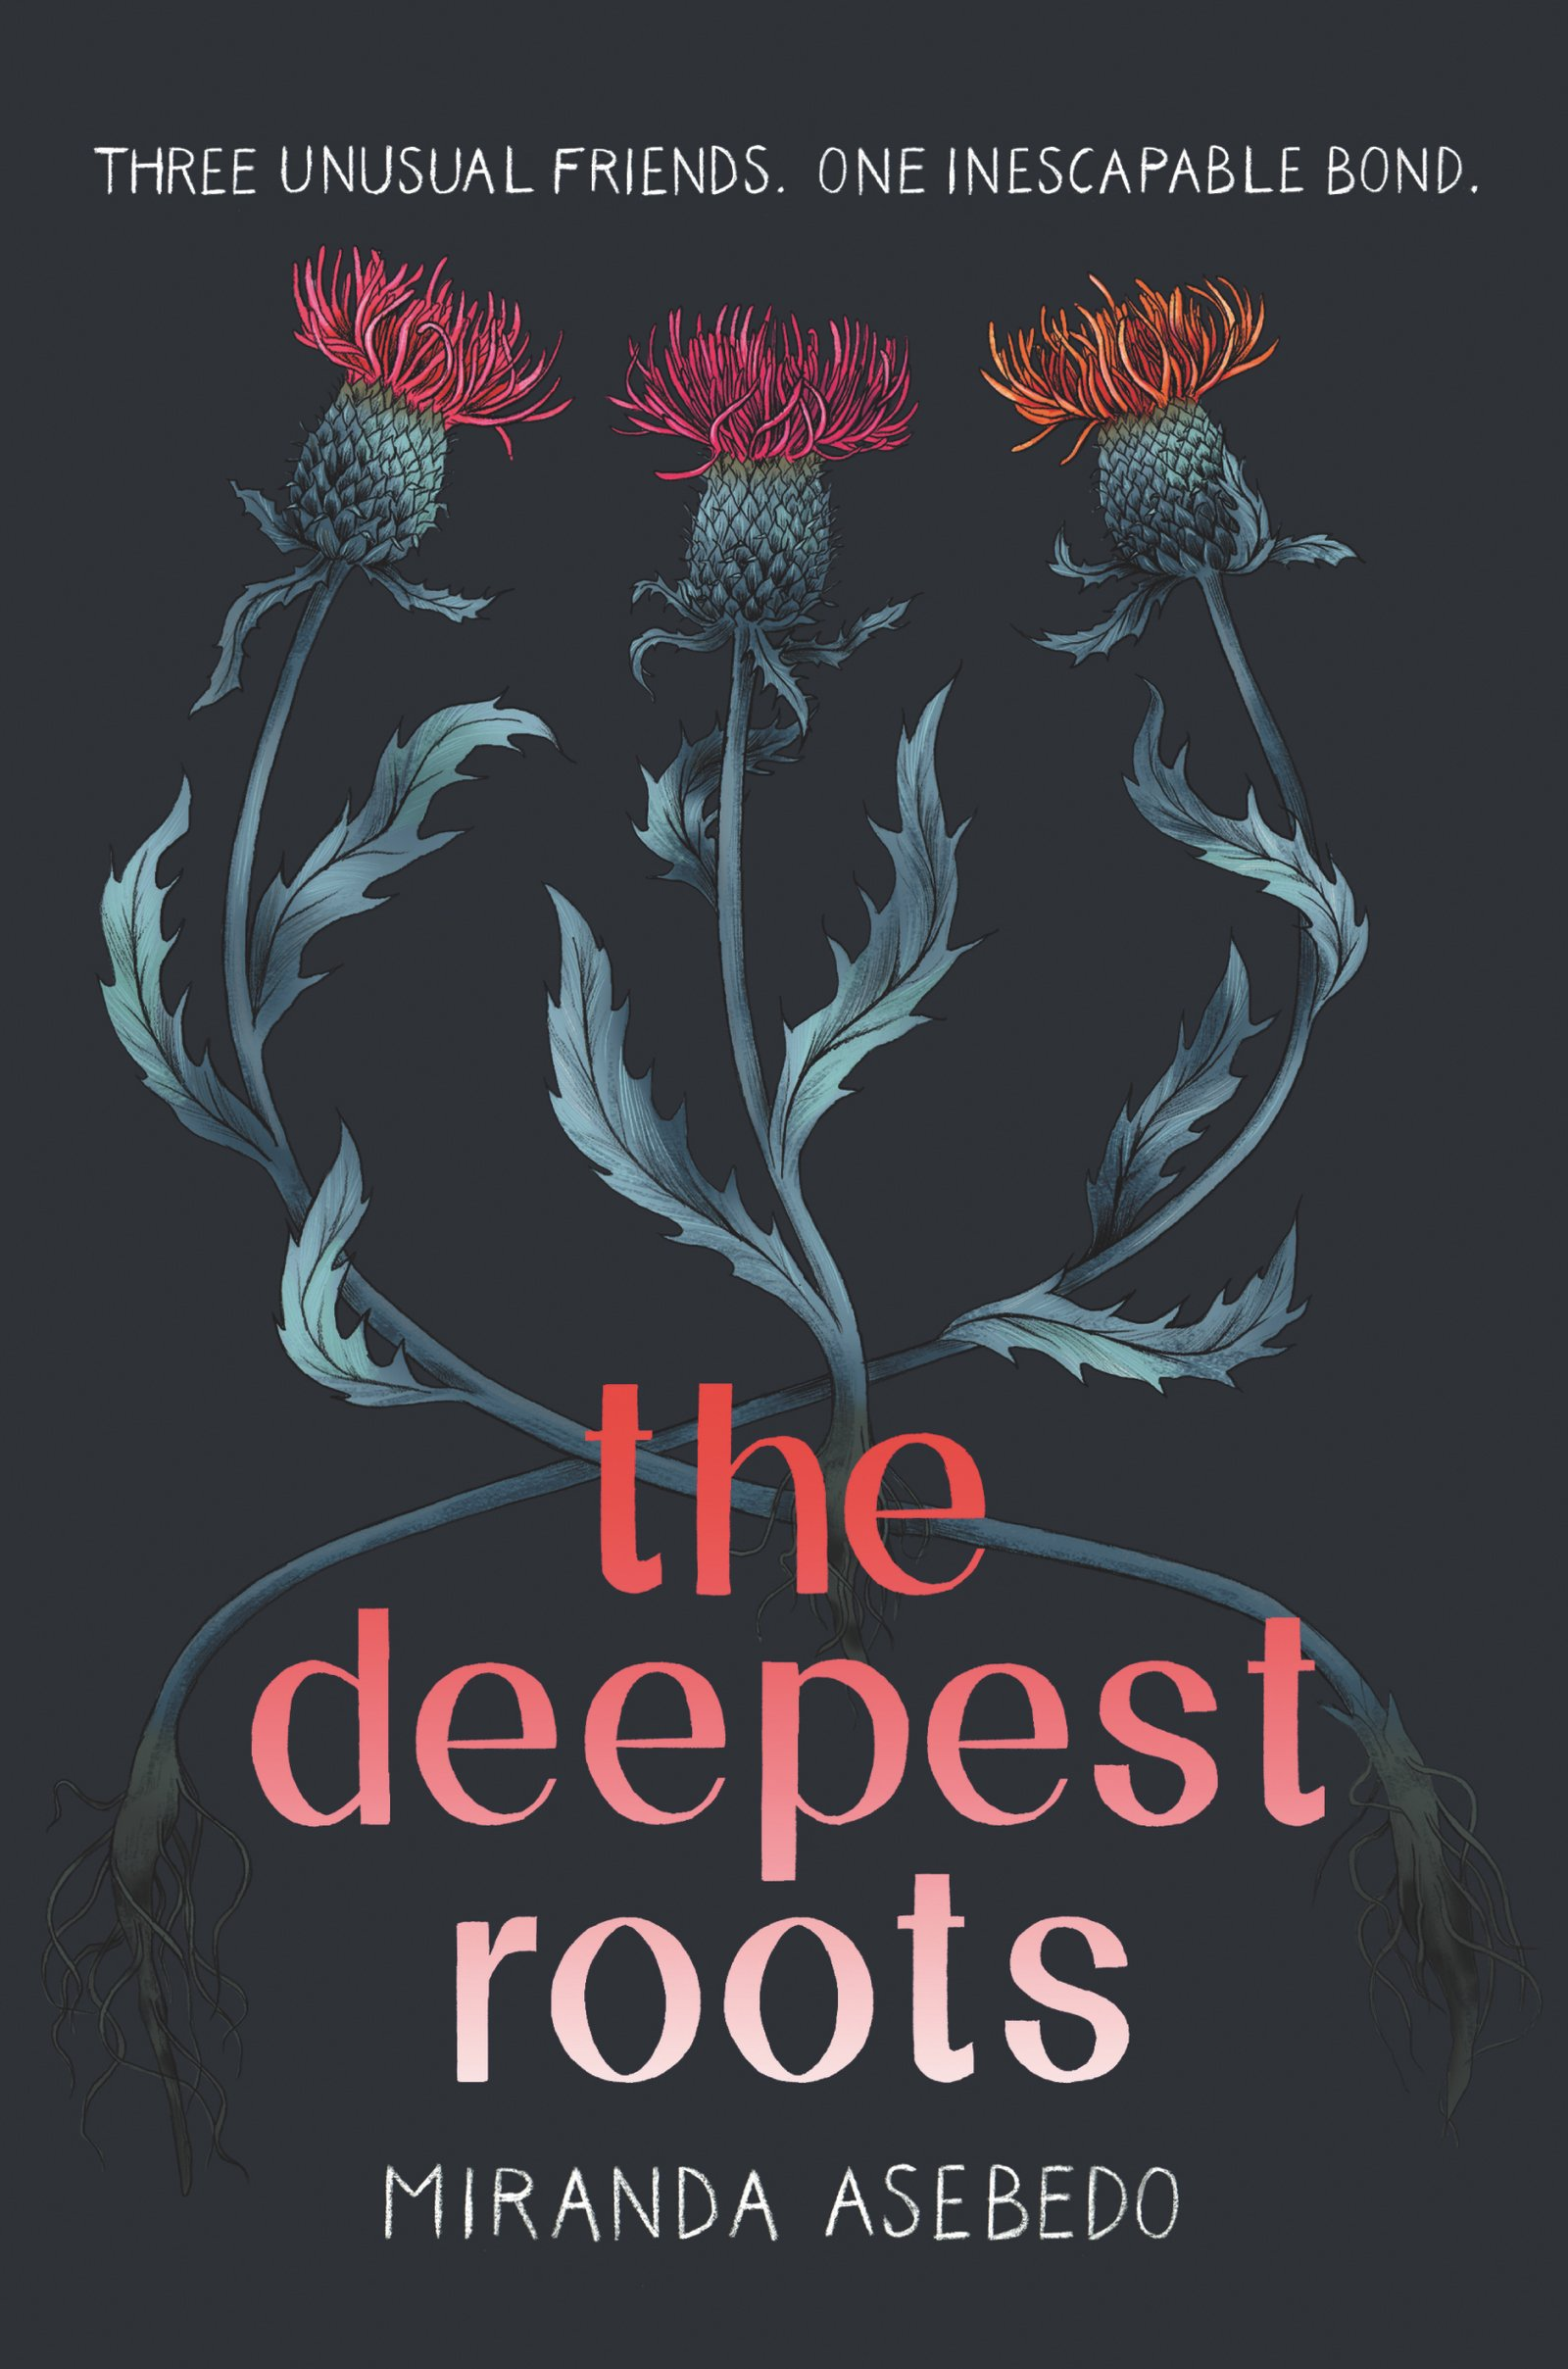 Amazon.com: The Deepest Roots (9780062747075): Asebedo, Miranda: Books